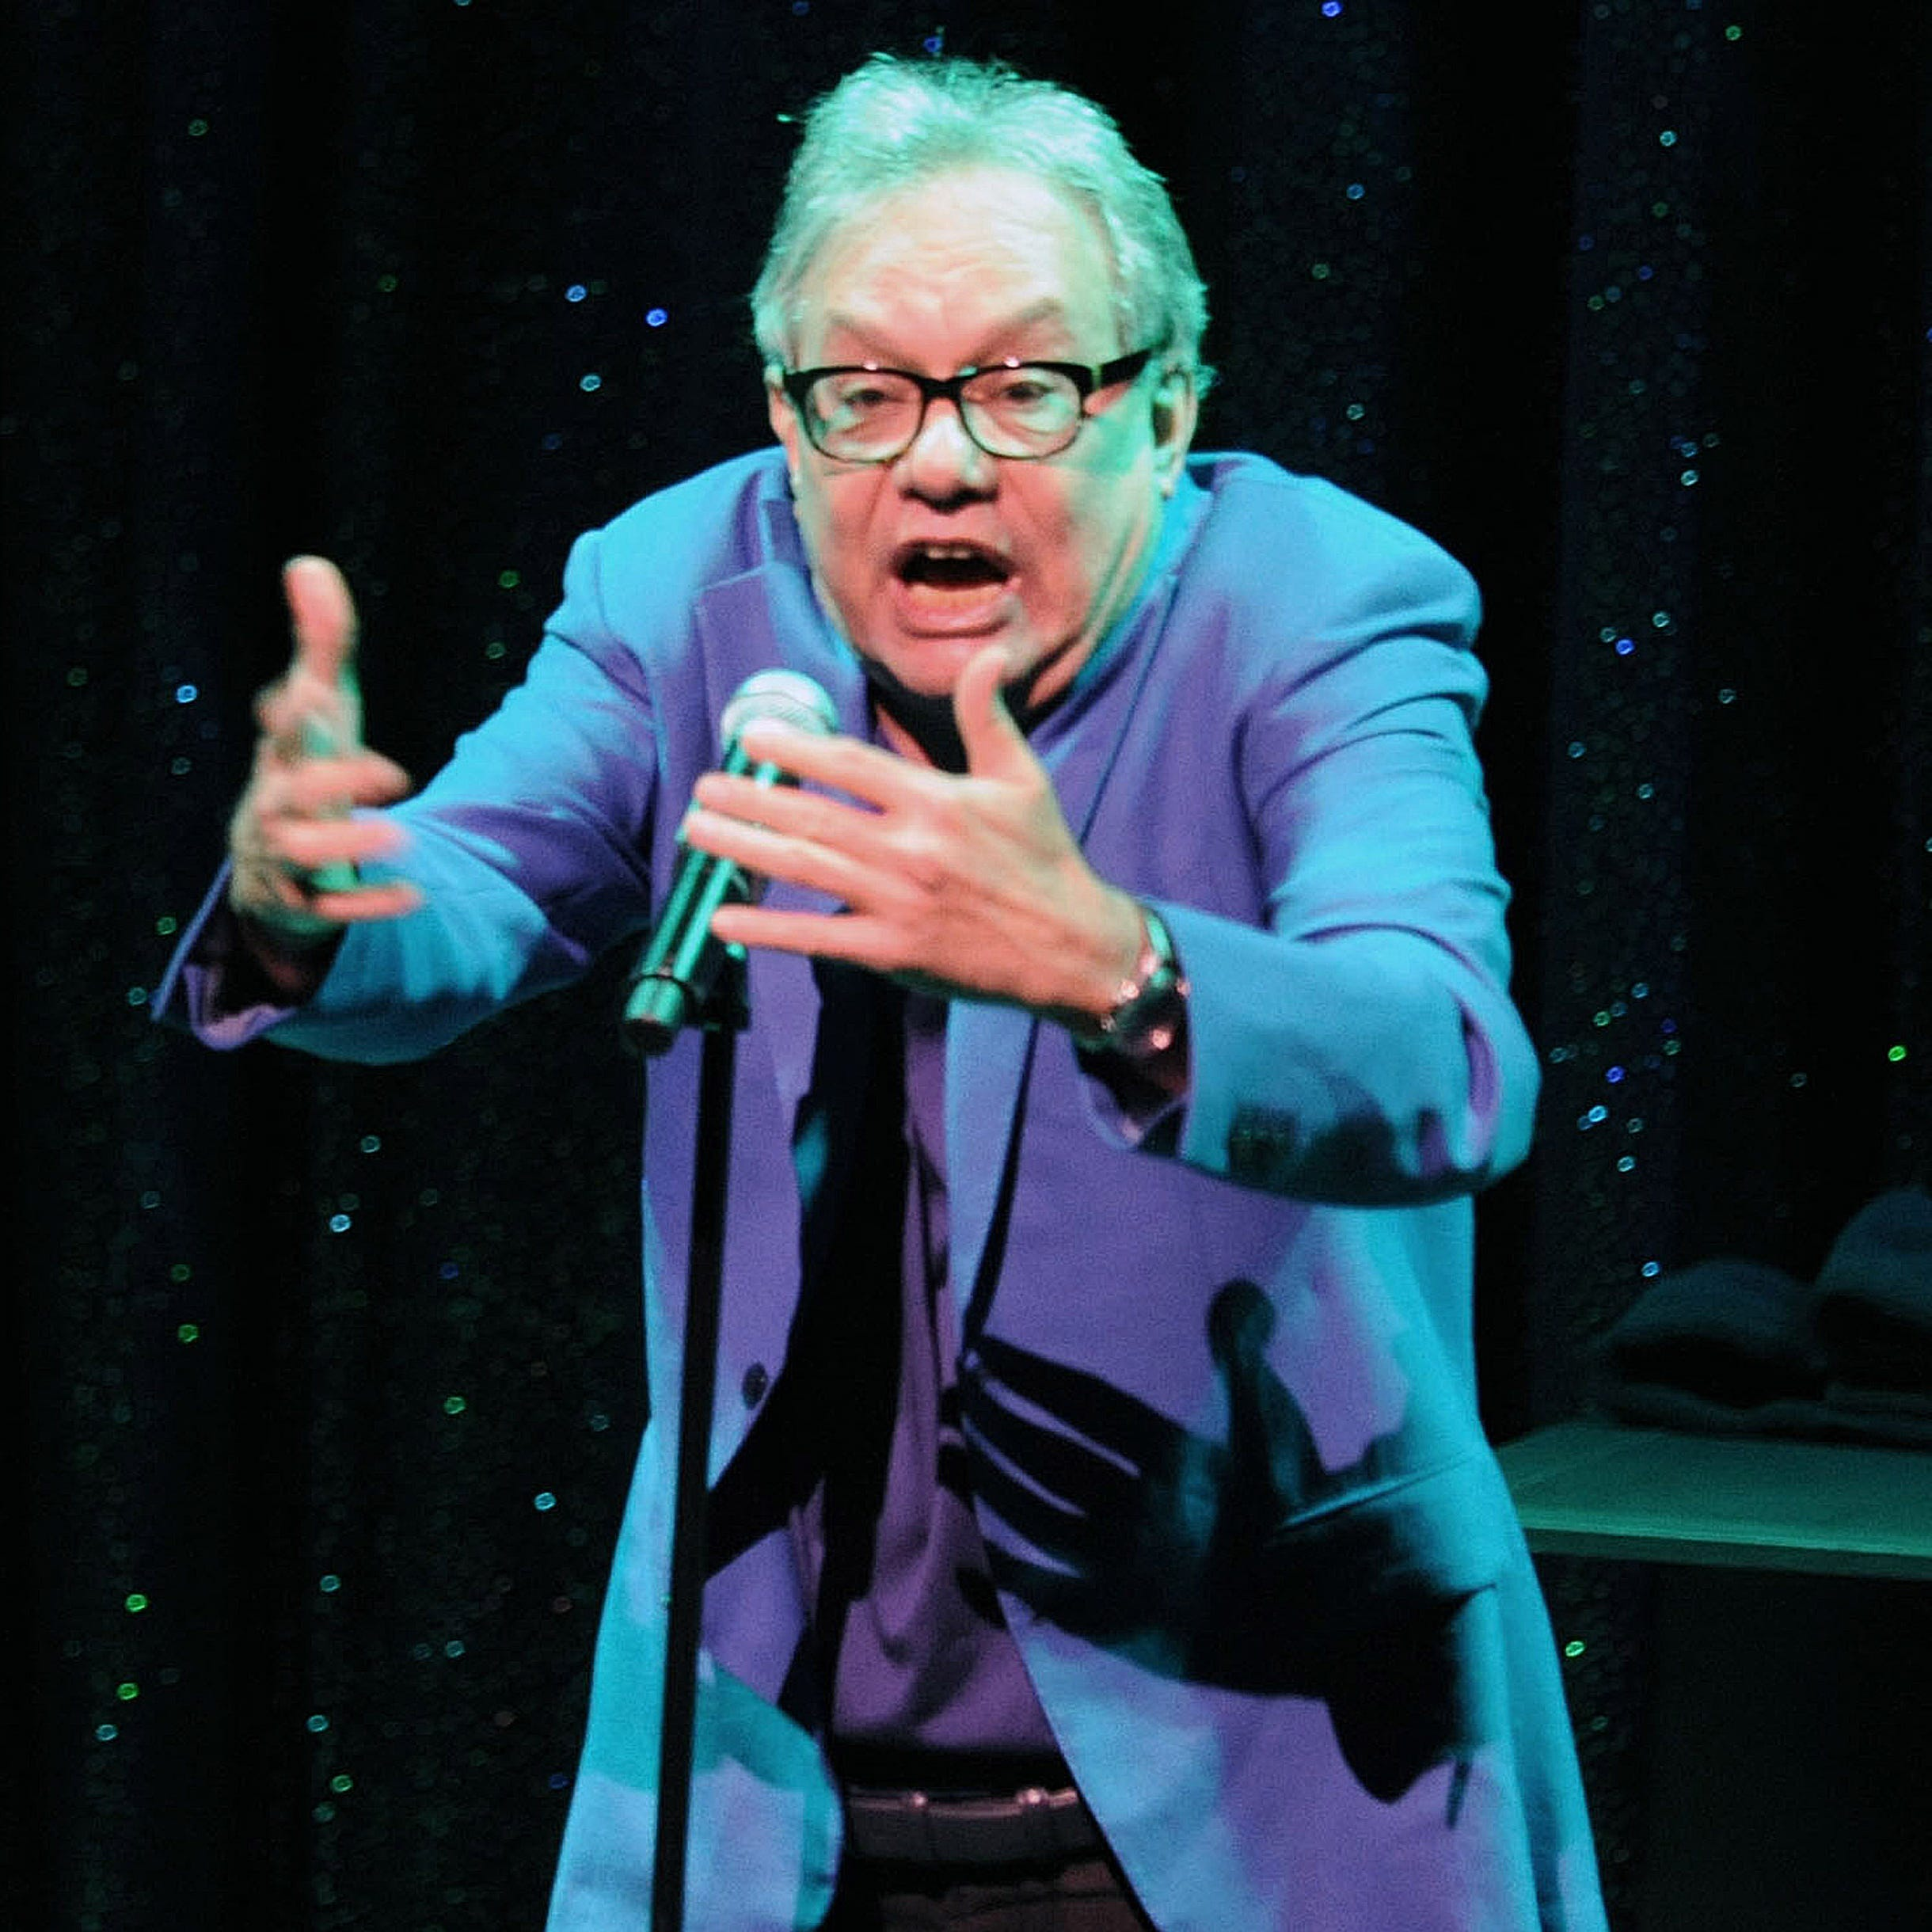 Lewis Black roasts Wilmington, Trump at sold-out Grand show